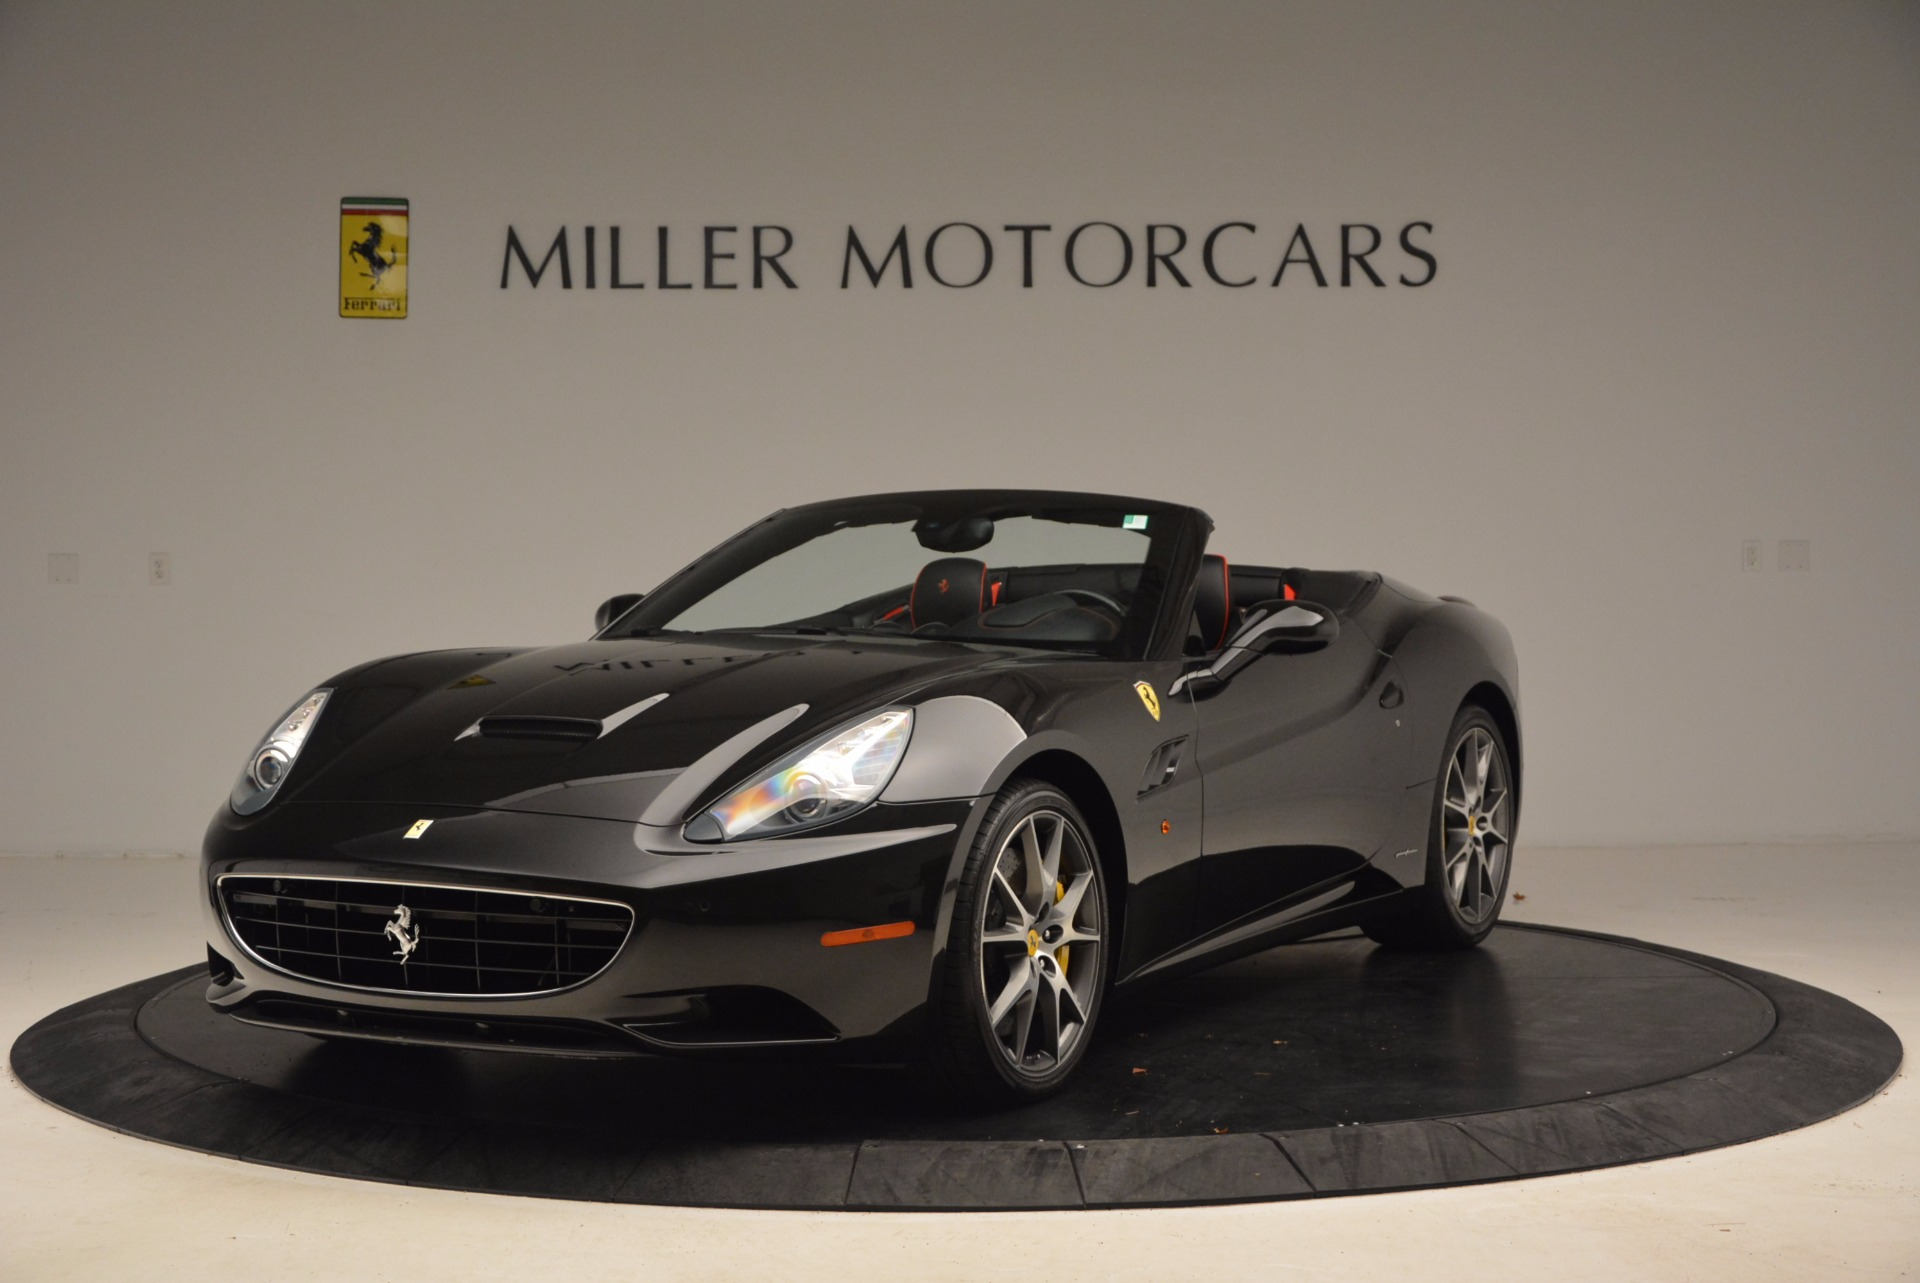 Used 2013 Ferrari California for sale Sold at Bentley Greenwich in Greenwich CT 06830 1